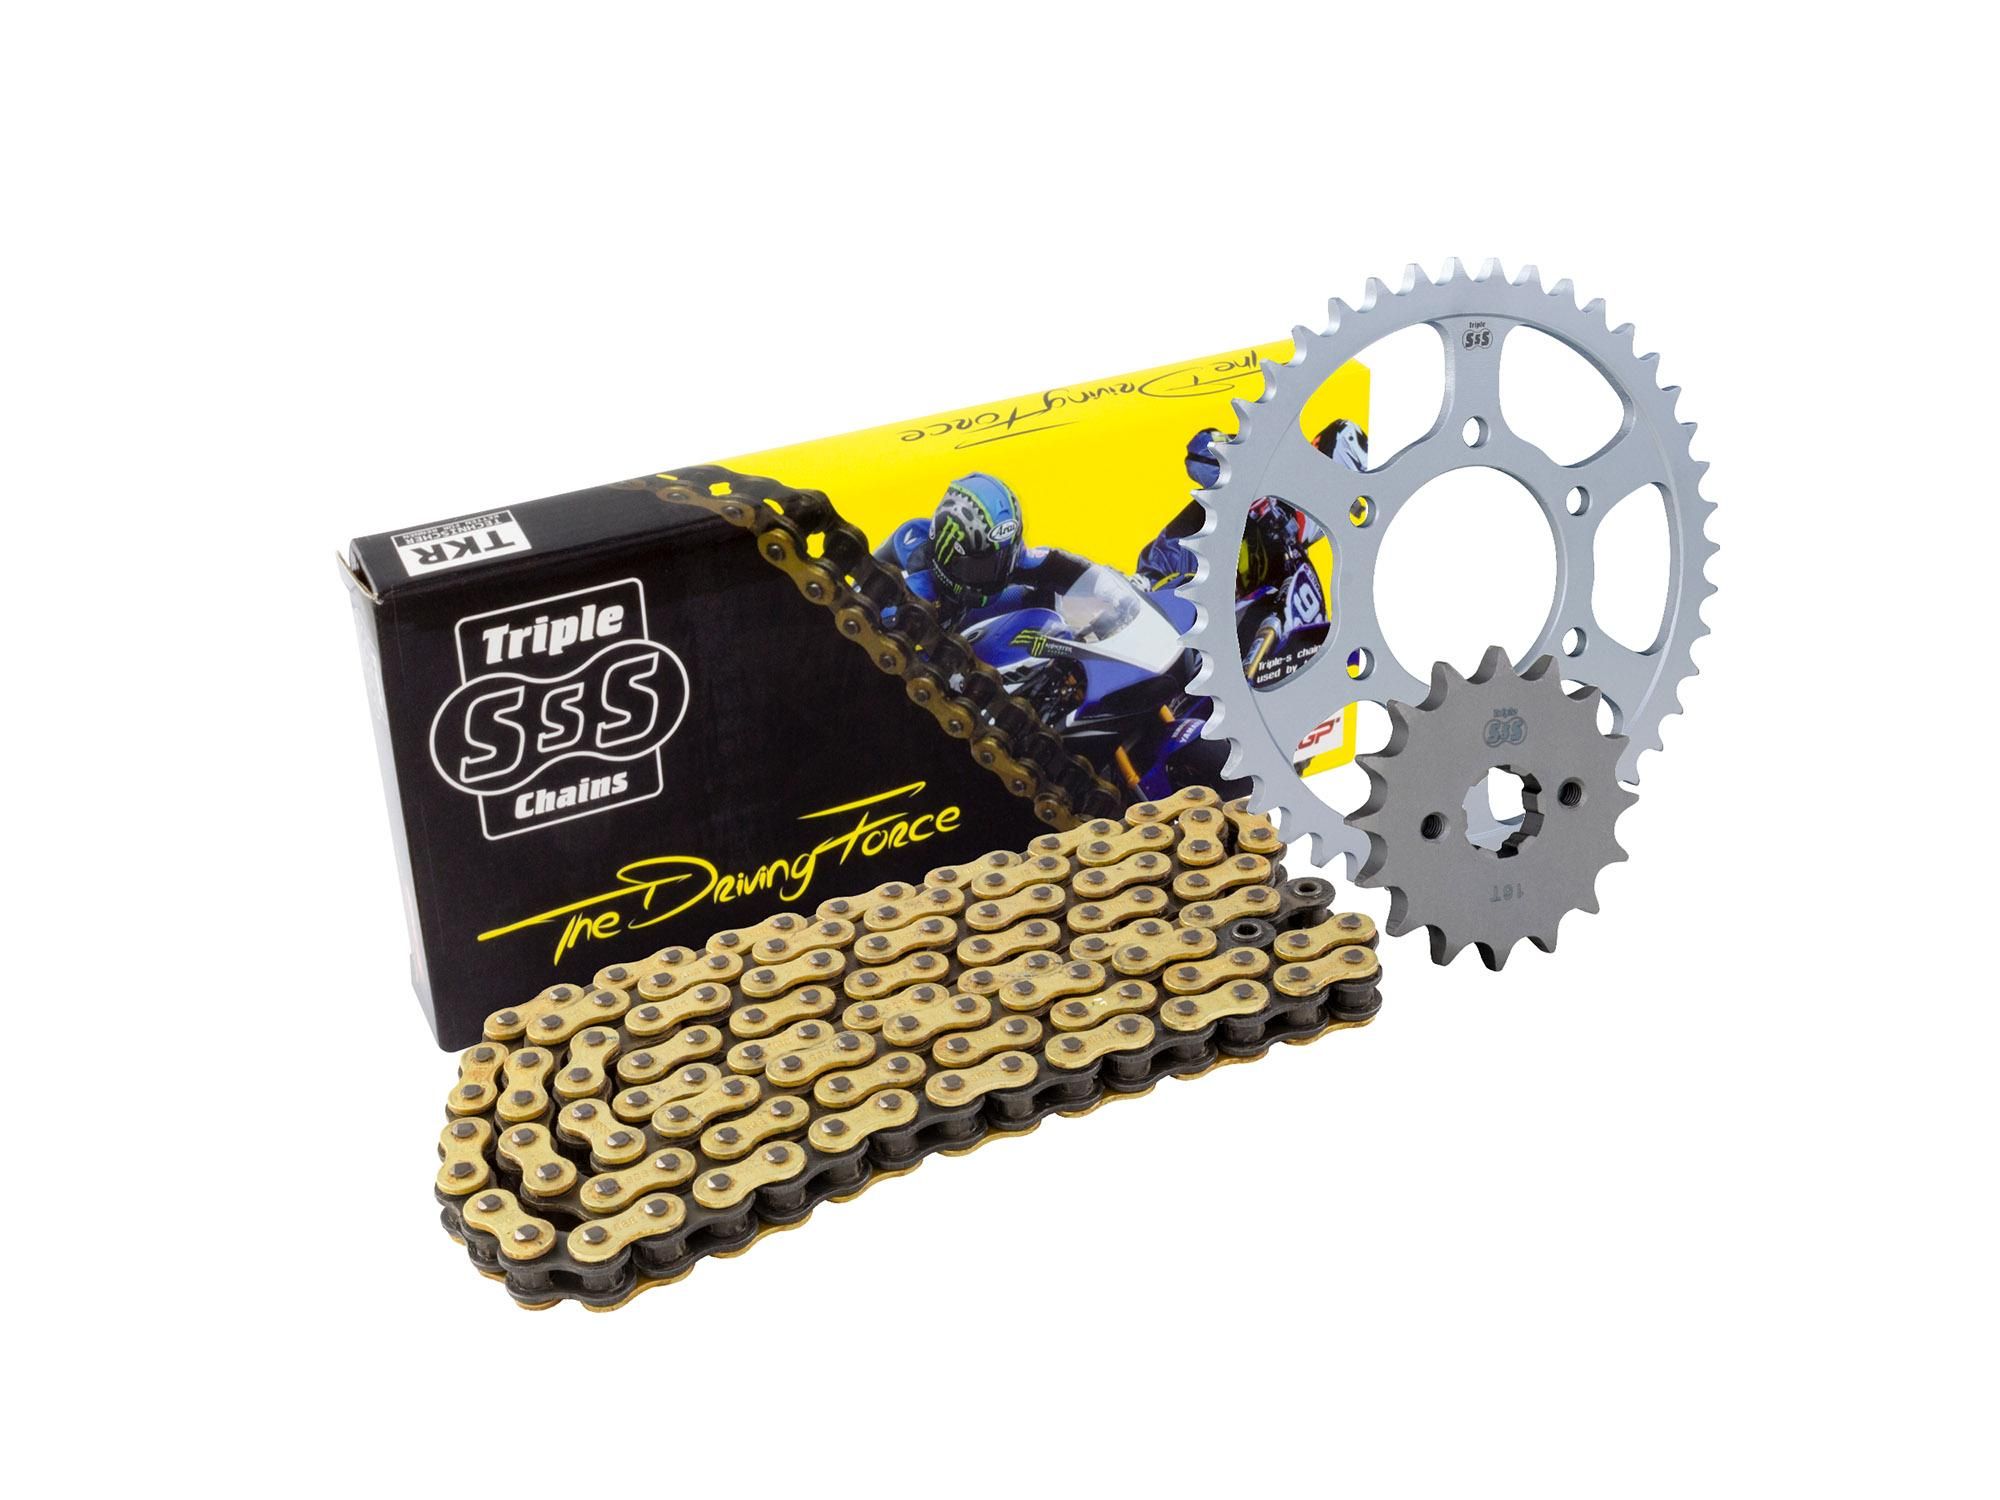 Kawasaki VN800 A3-A11 Vulcan 97-05 Chain & Sprocket Kit: 17T Front, 42T Rear, HD O-Ring Gold Chain 530H 114Link